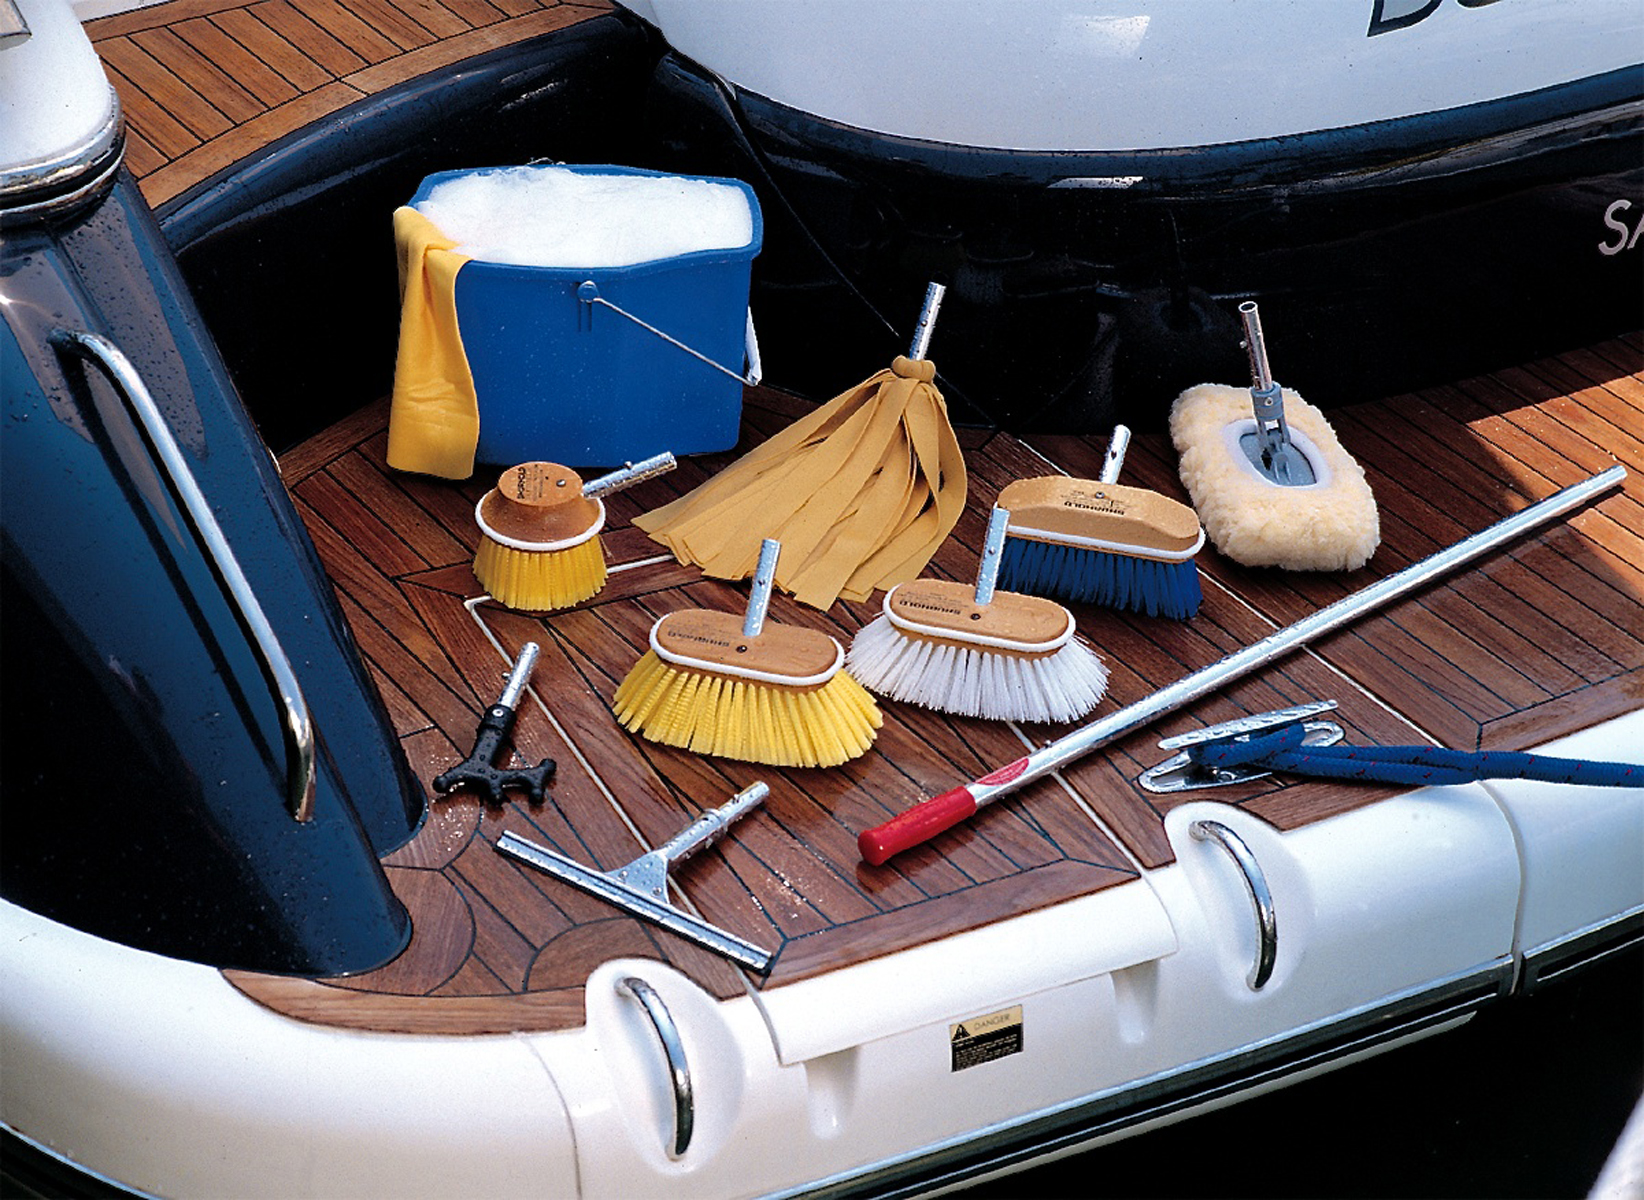 Image result for image yacht deck crew cleaning